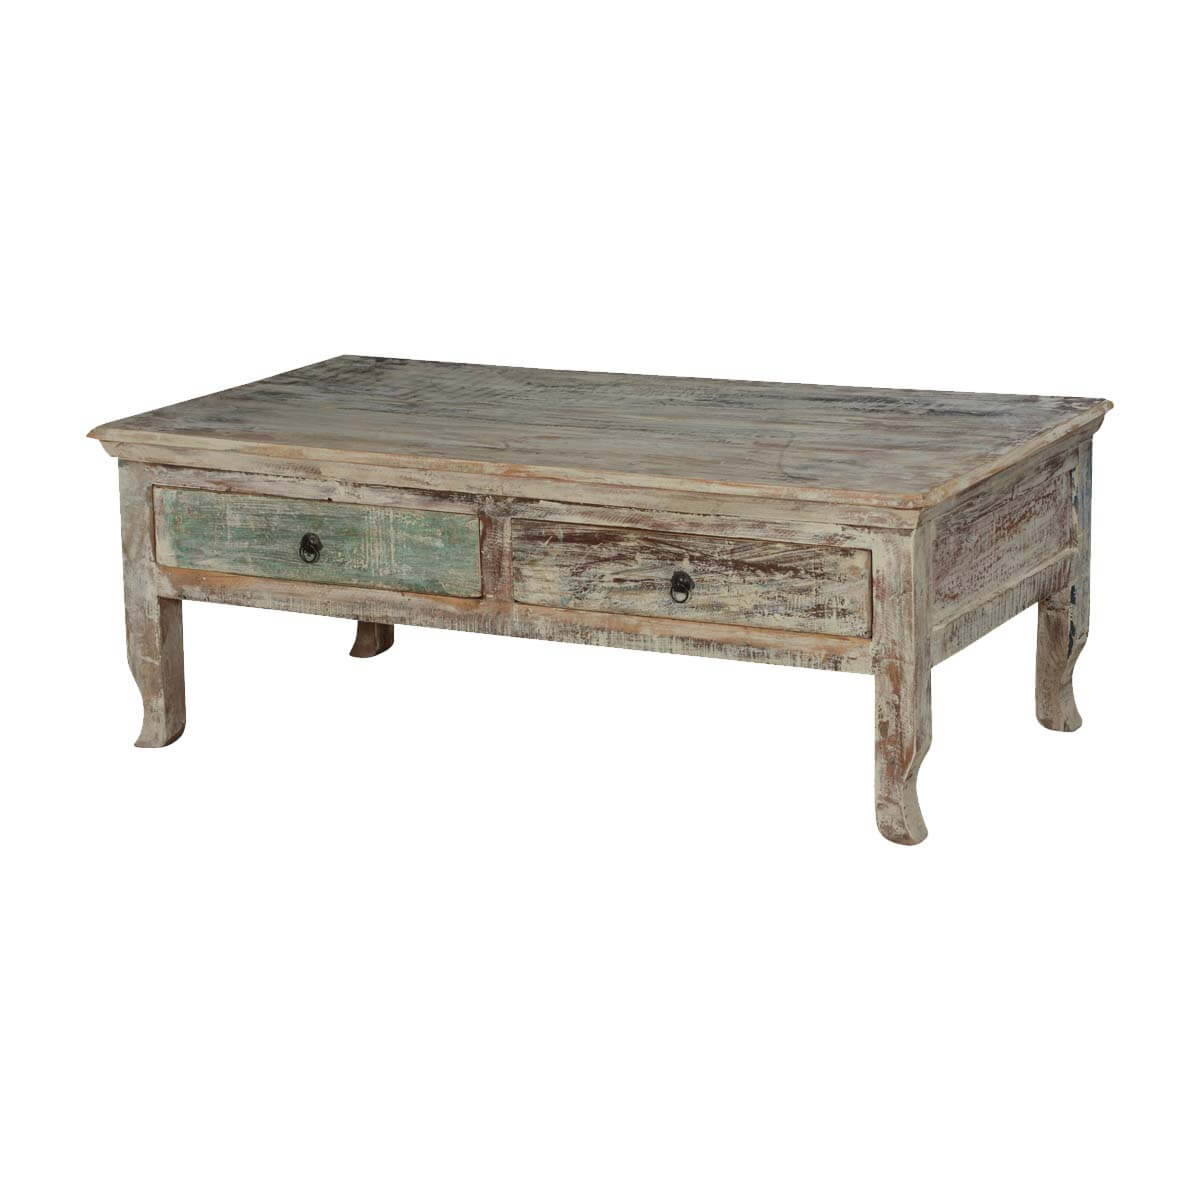 Superb img of Winter Storm Reclaimed Wood Coffee Table w 2 Drawers with #B28C19 color and 1200x1200 pixels